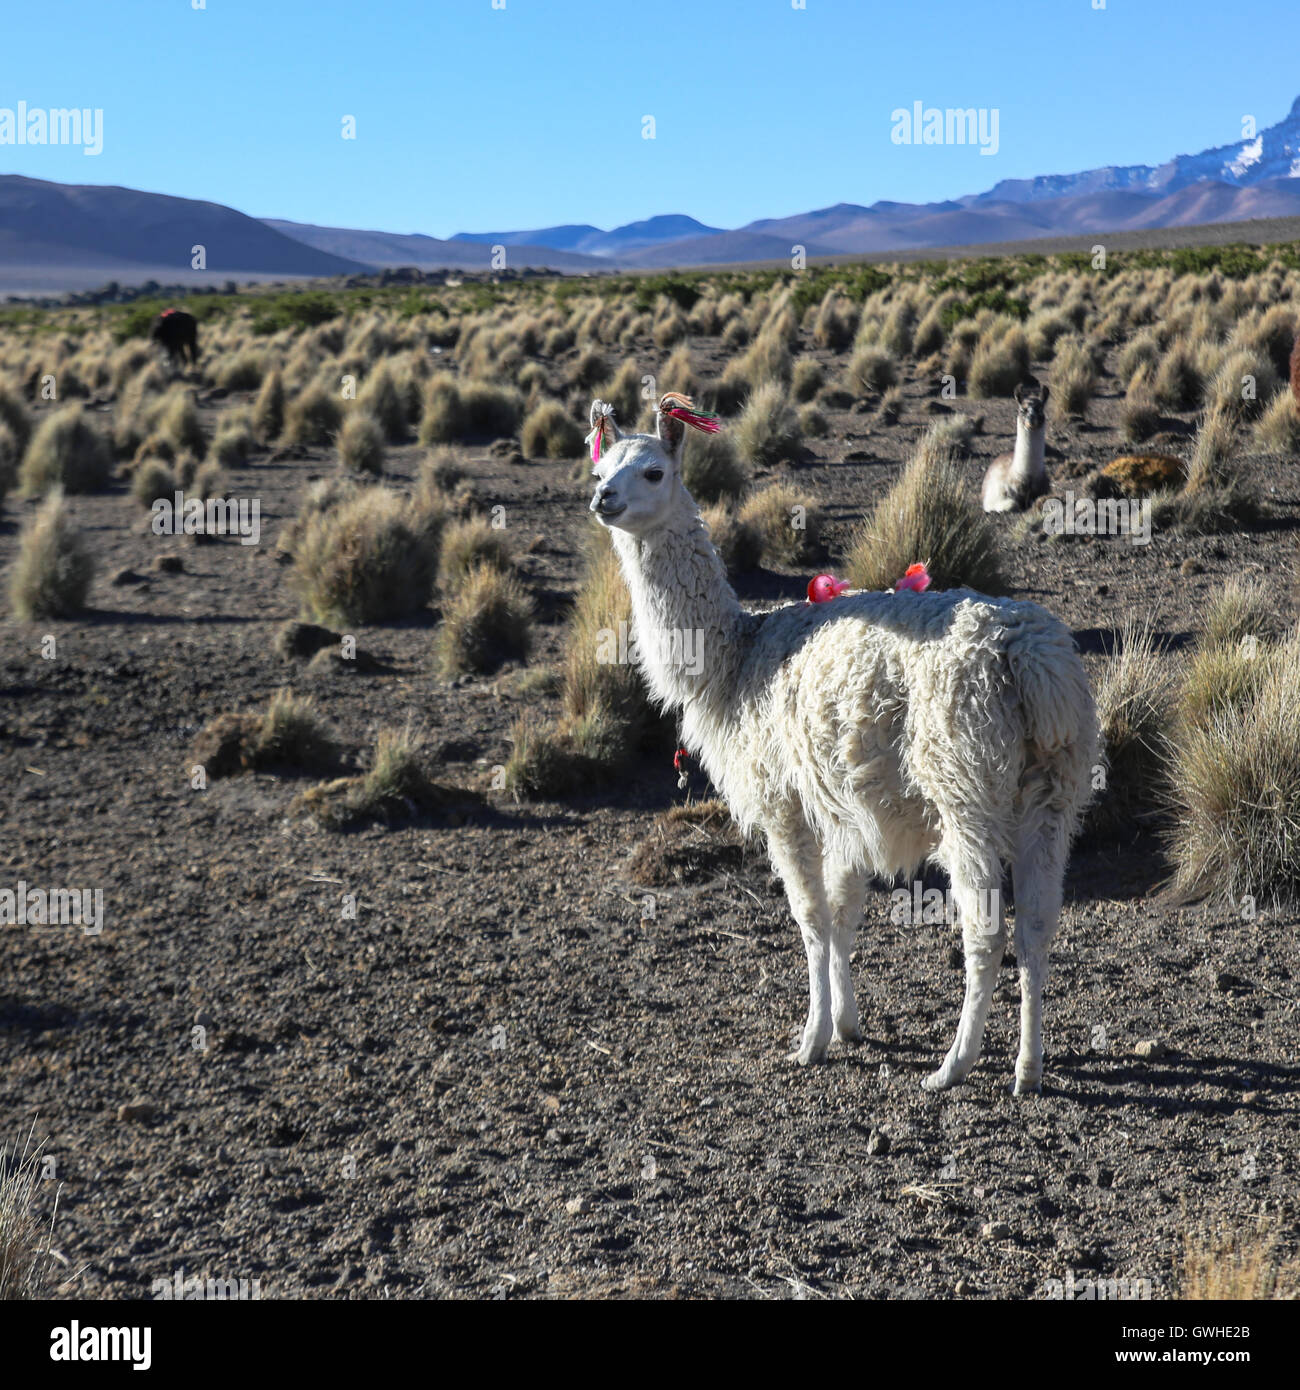 The Andean landscape with herd of llamas on Natural Park of Sajama. Bolivia. - Stock Image